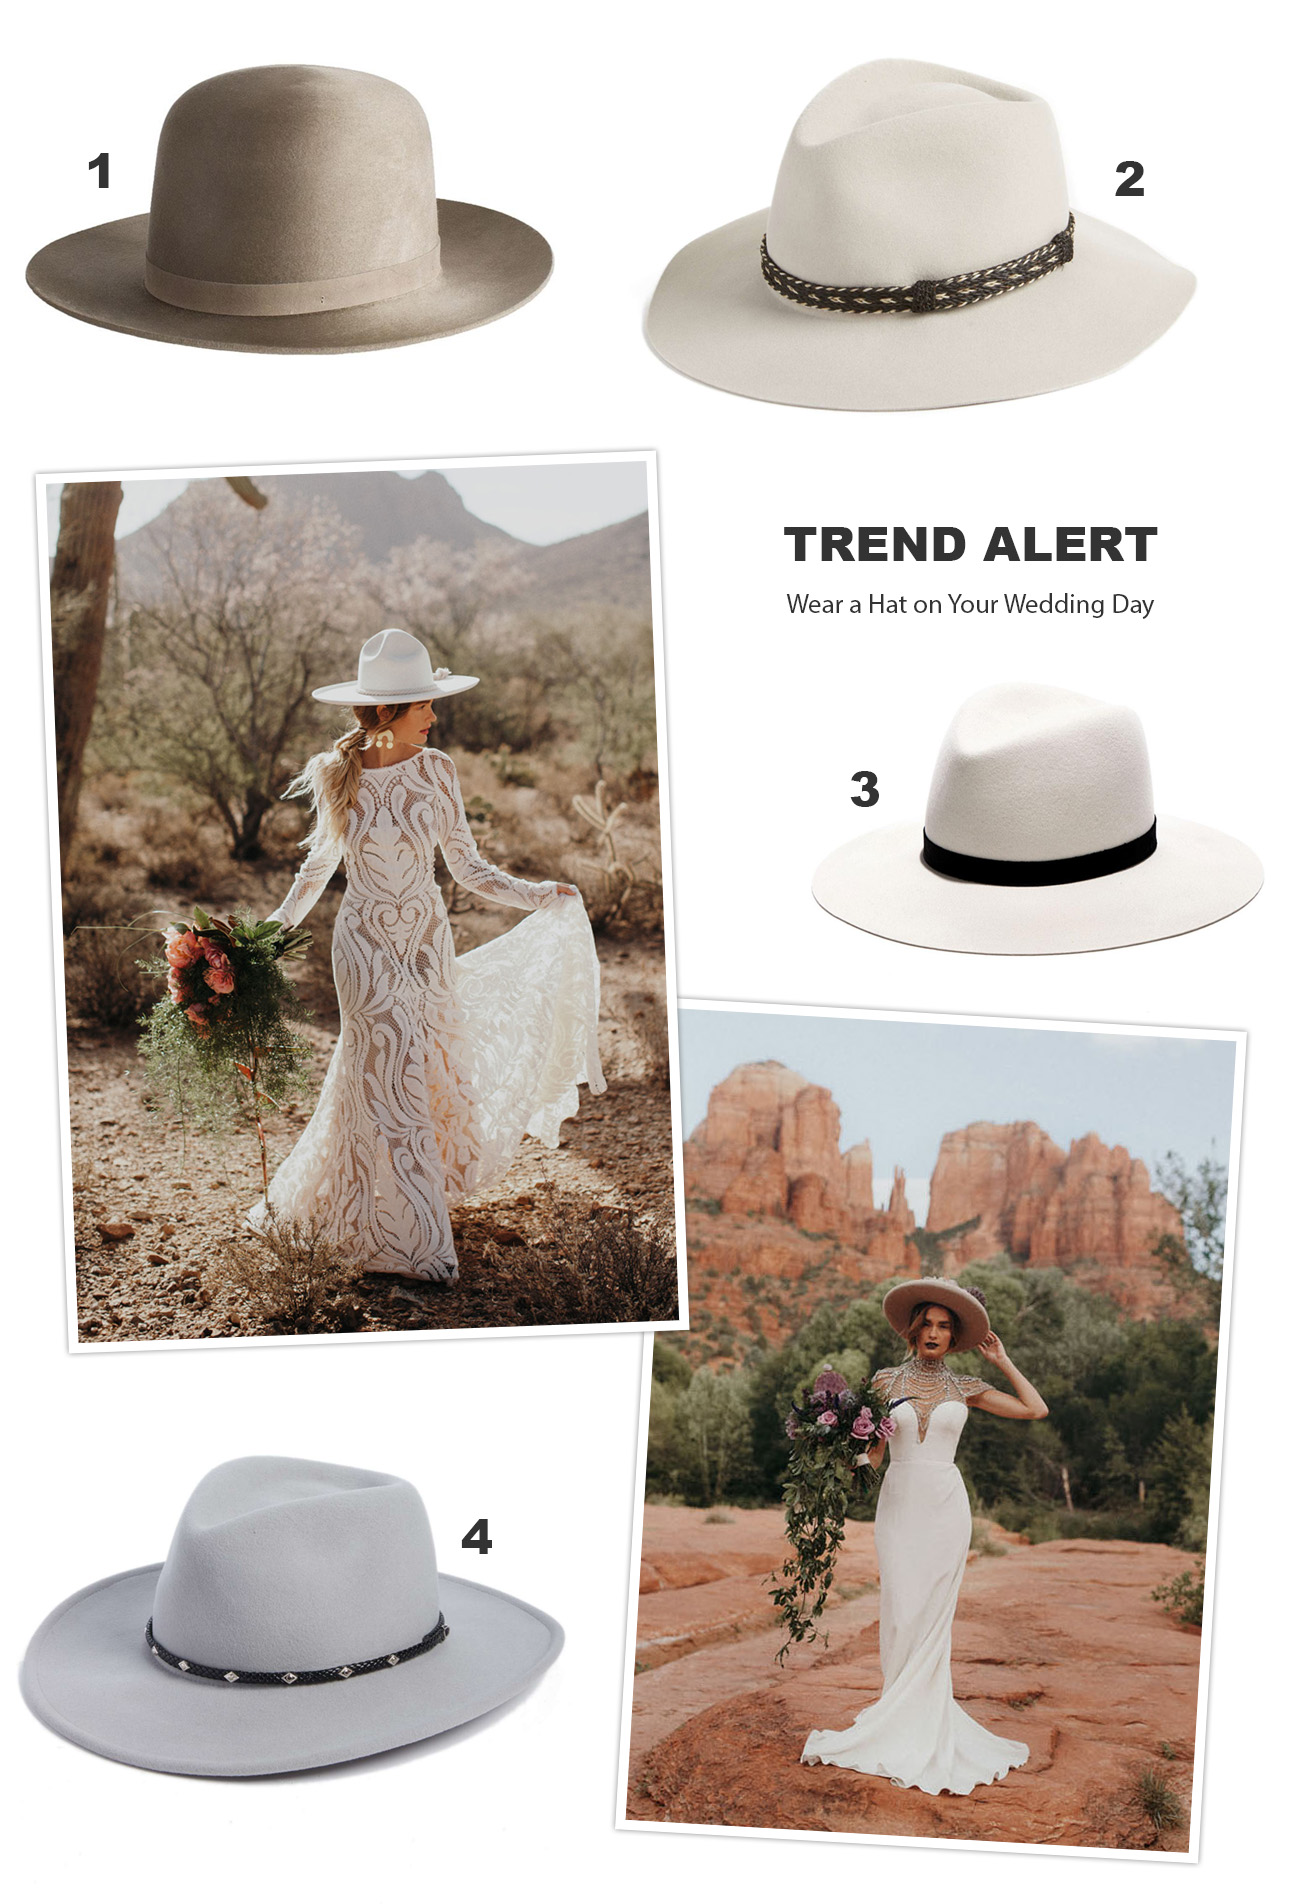 Wear a Hat on Your Wedding Day!